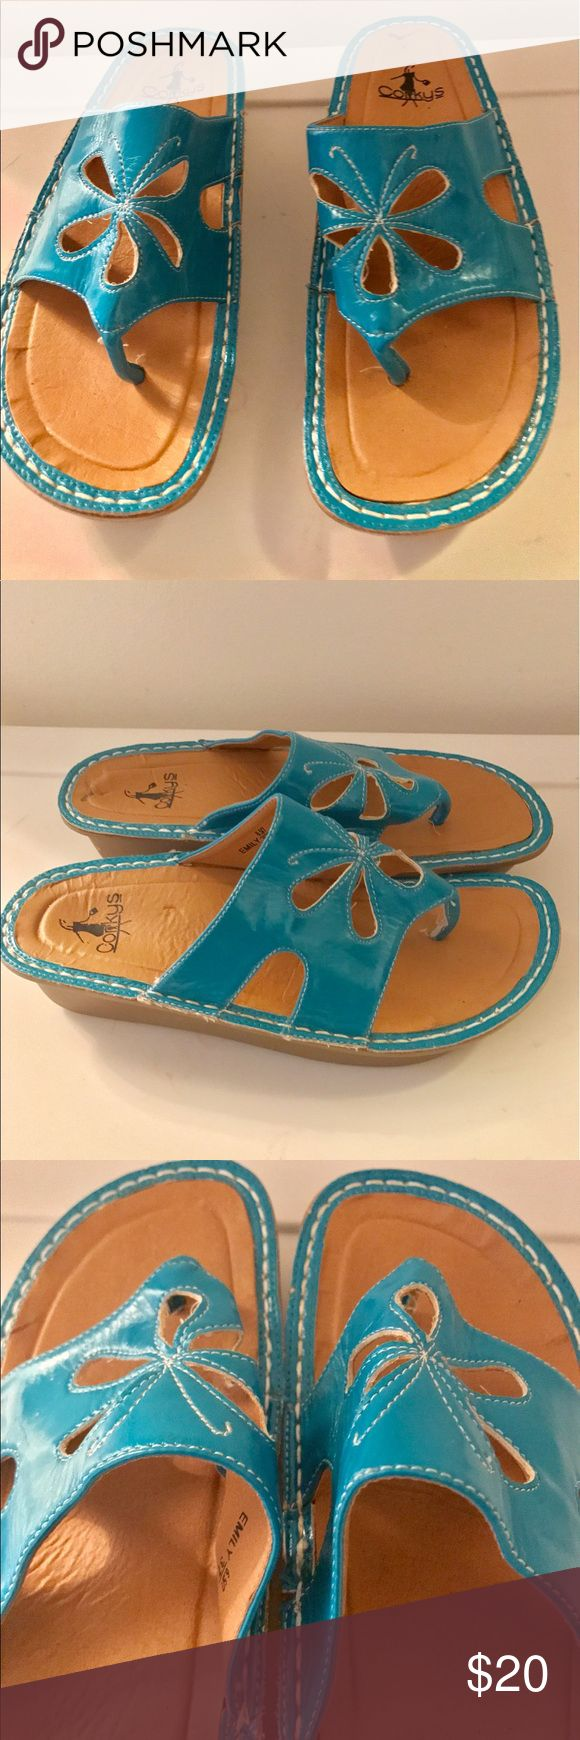 Corkys Turquoise Sandals Turquoise flower thong sandals size 7 Corkys Shoes Sandals